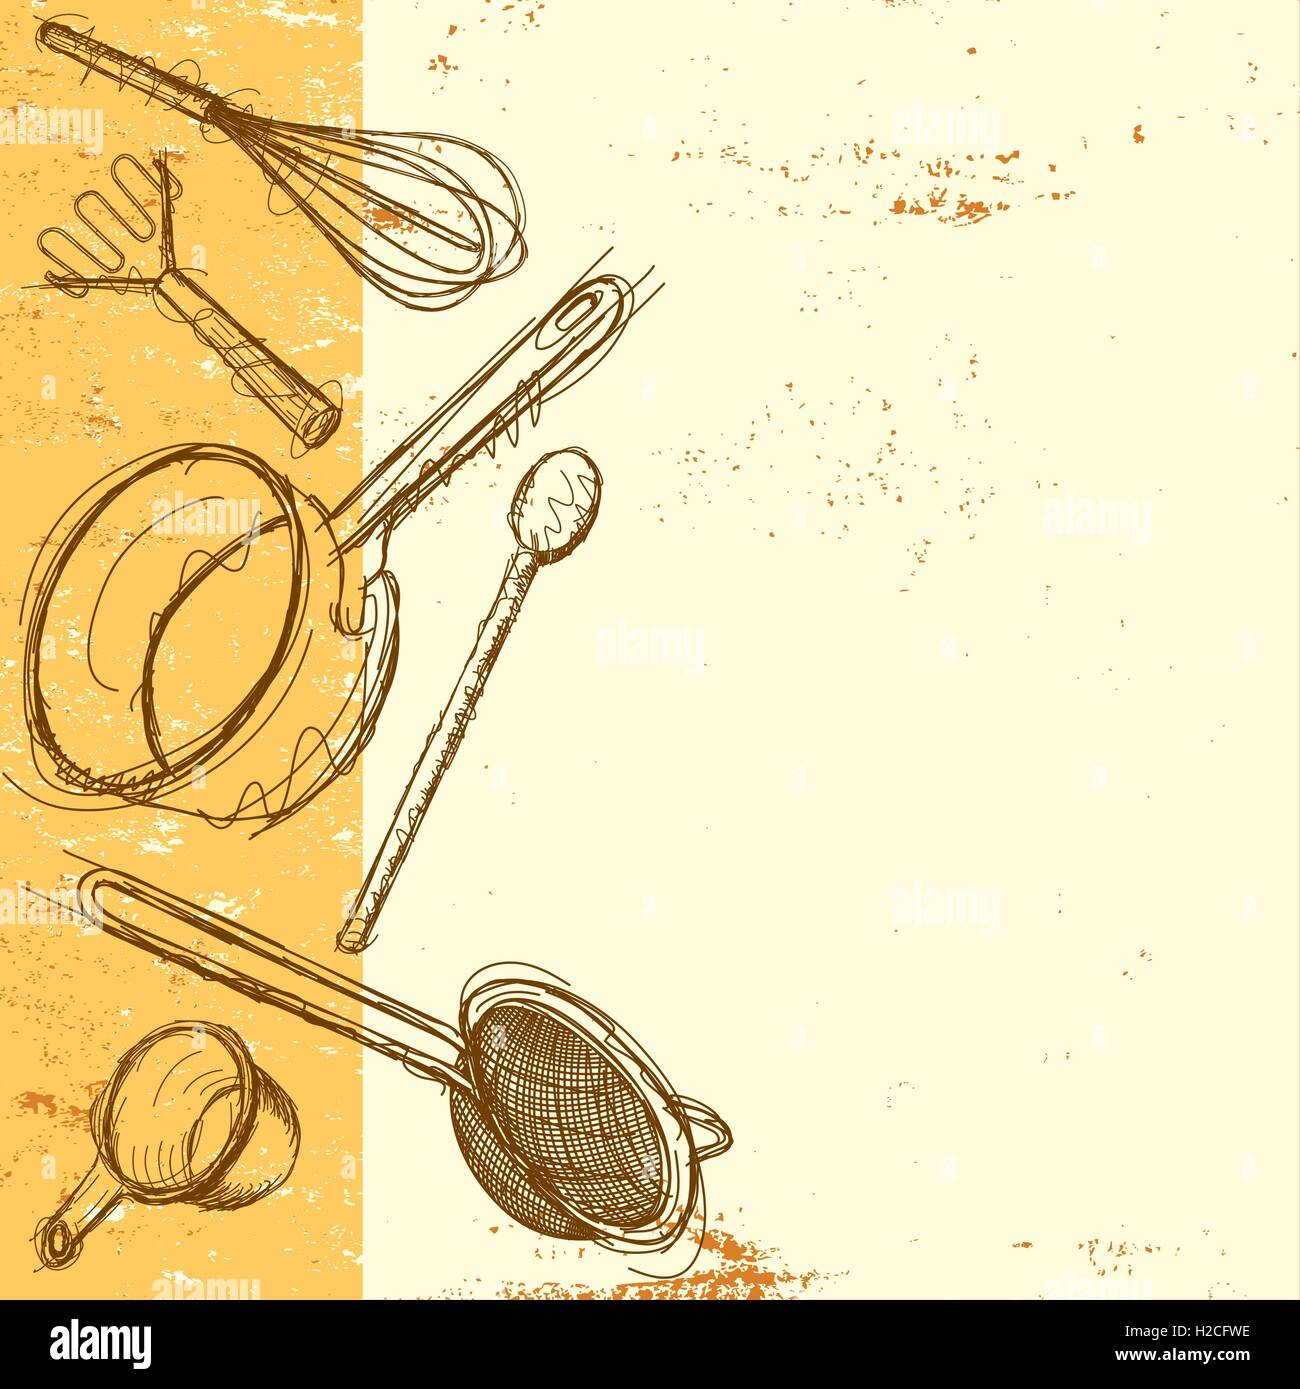 Cooking utensil background Sketchy hand drawn kitchen utensils on